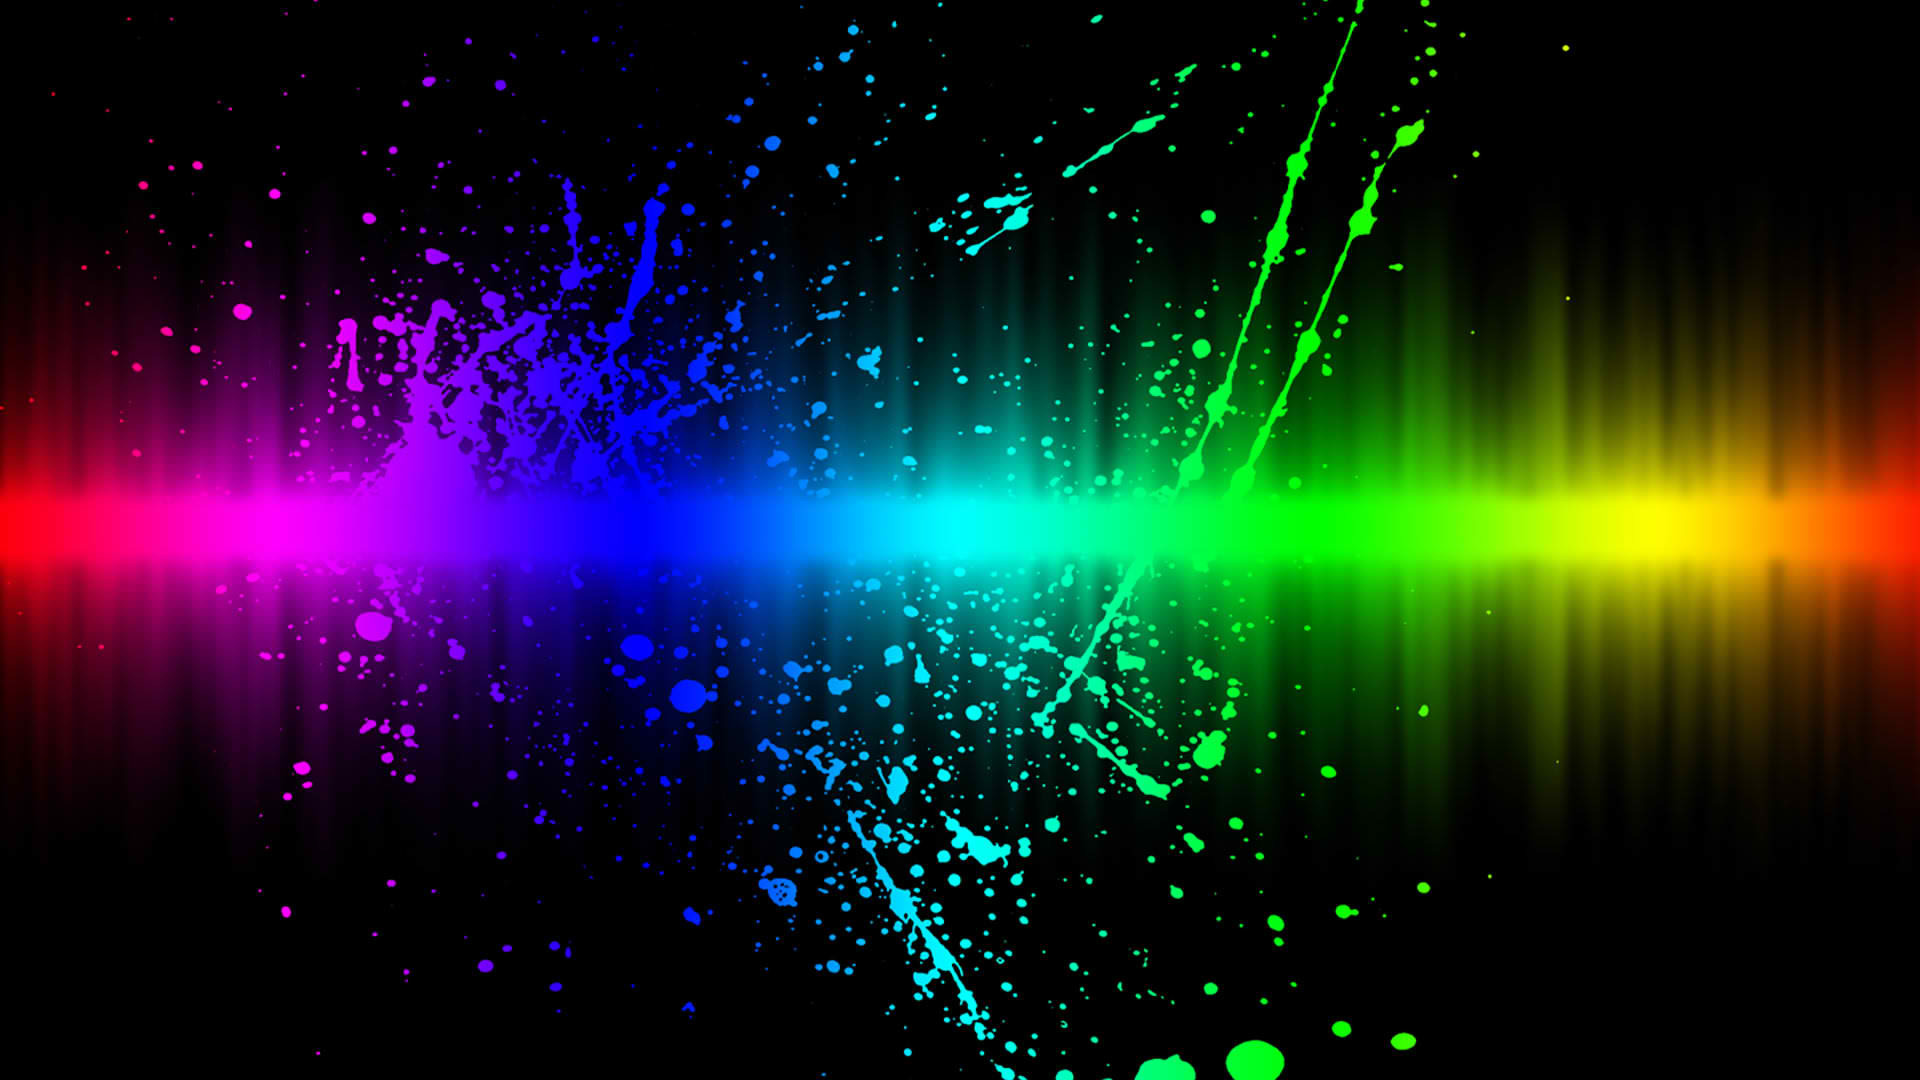 Cool And Colorful Backgrounds 33 Wallpapers – Adorable Wallpapers